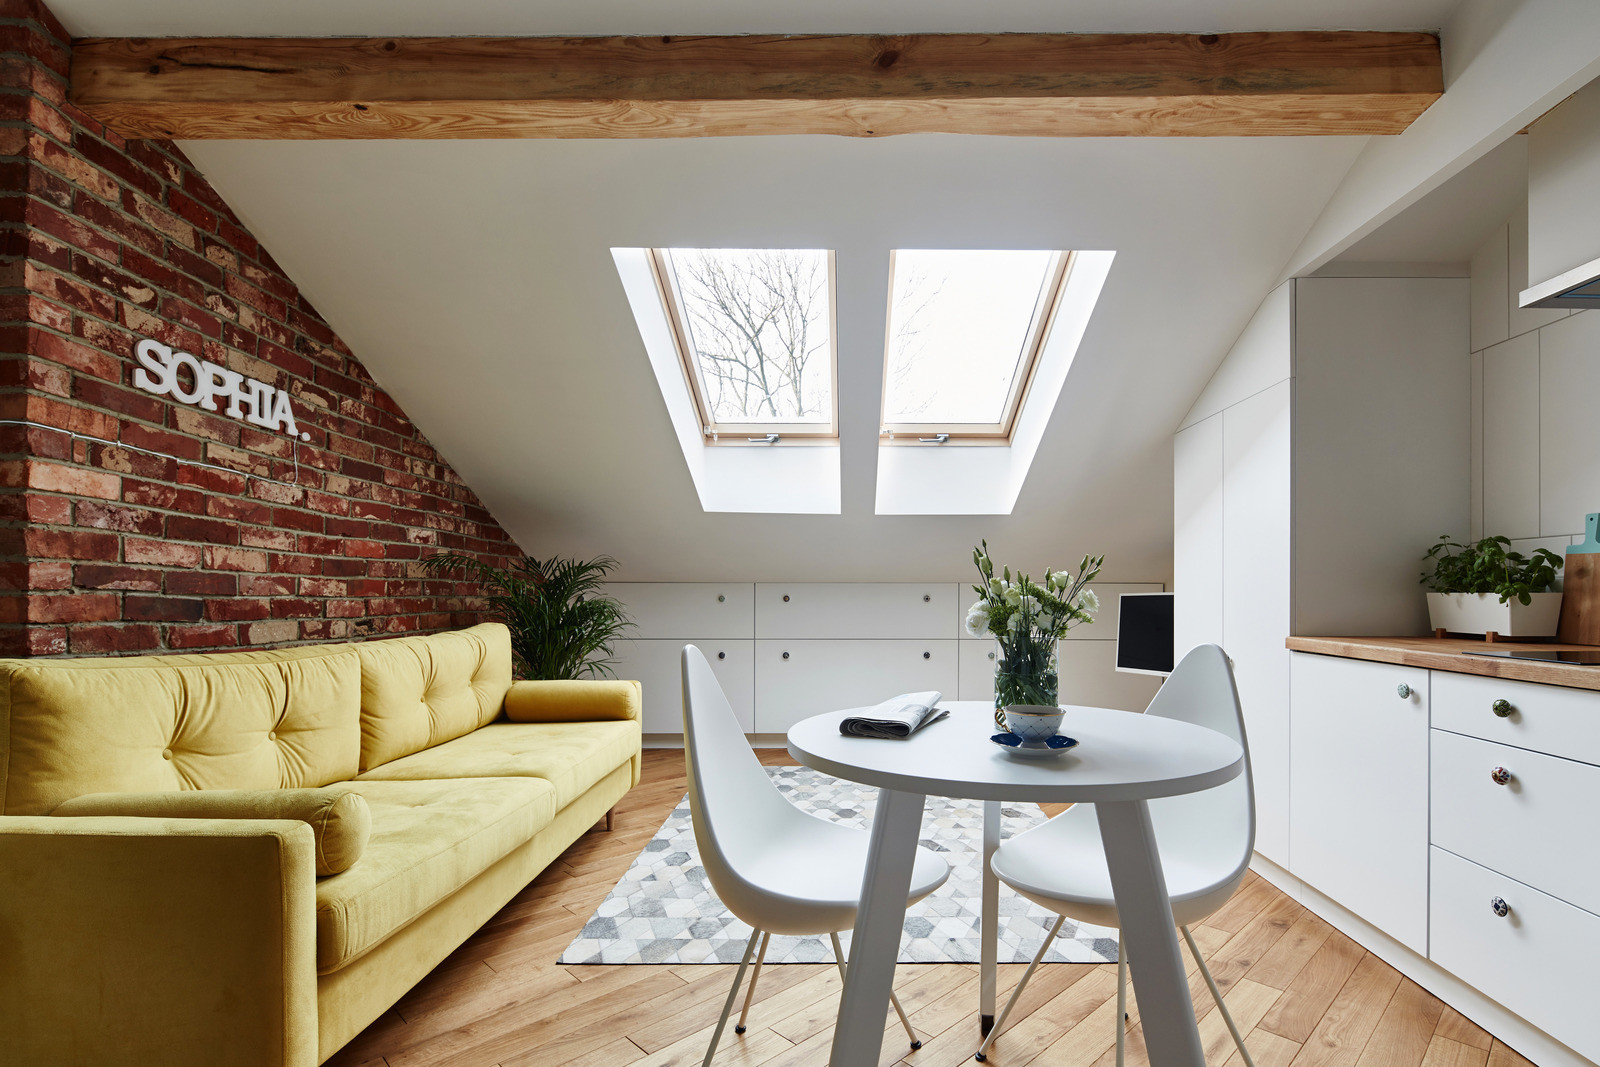 Attic Apartment With Brick Wall